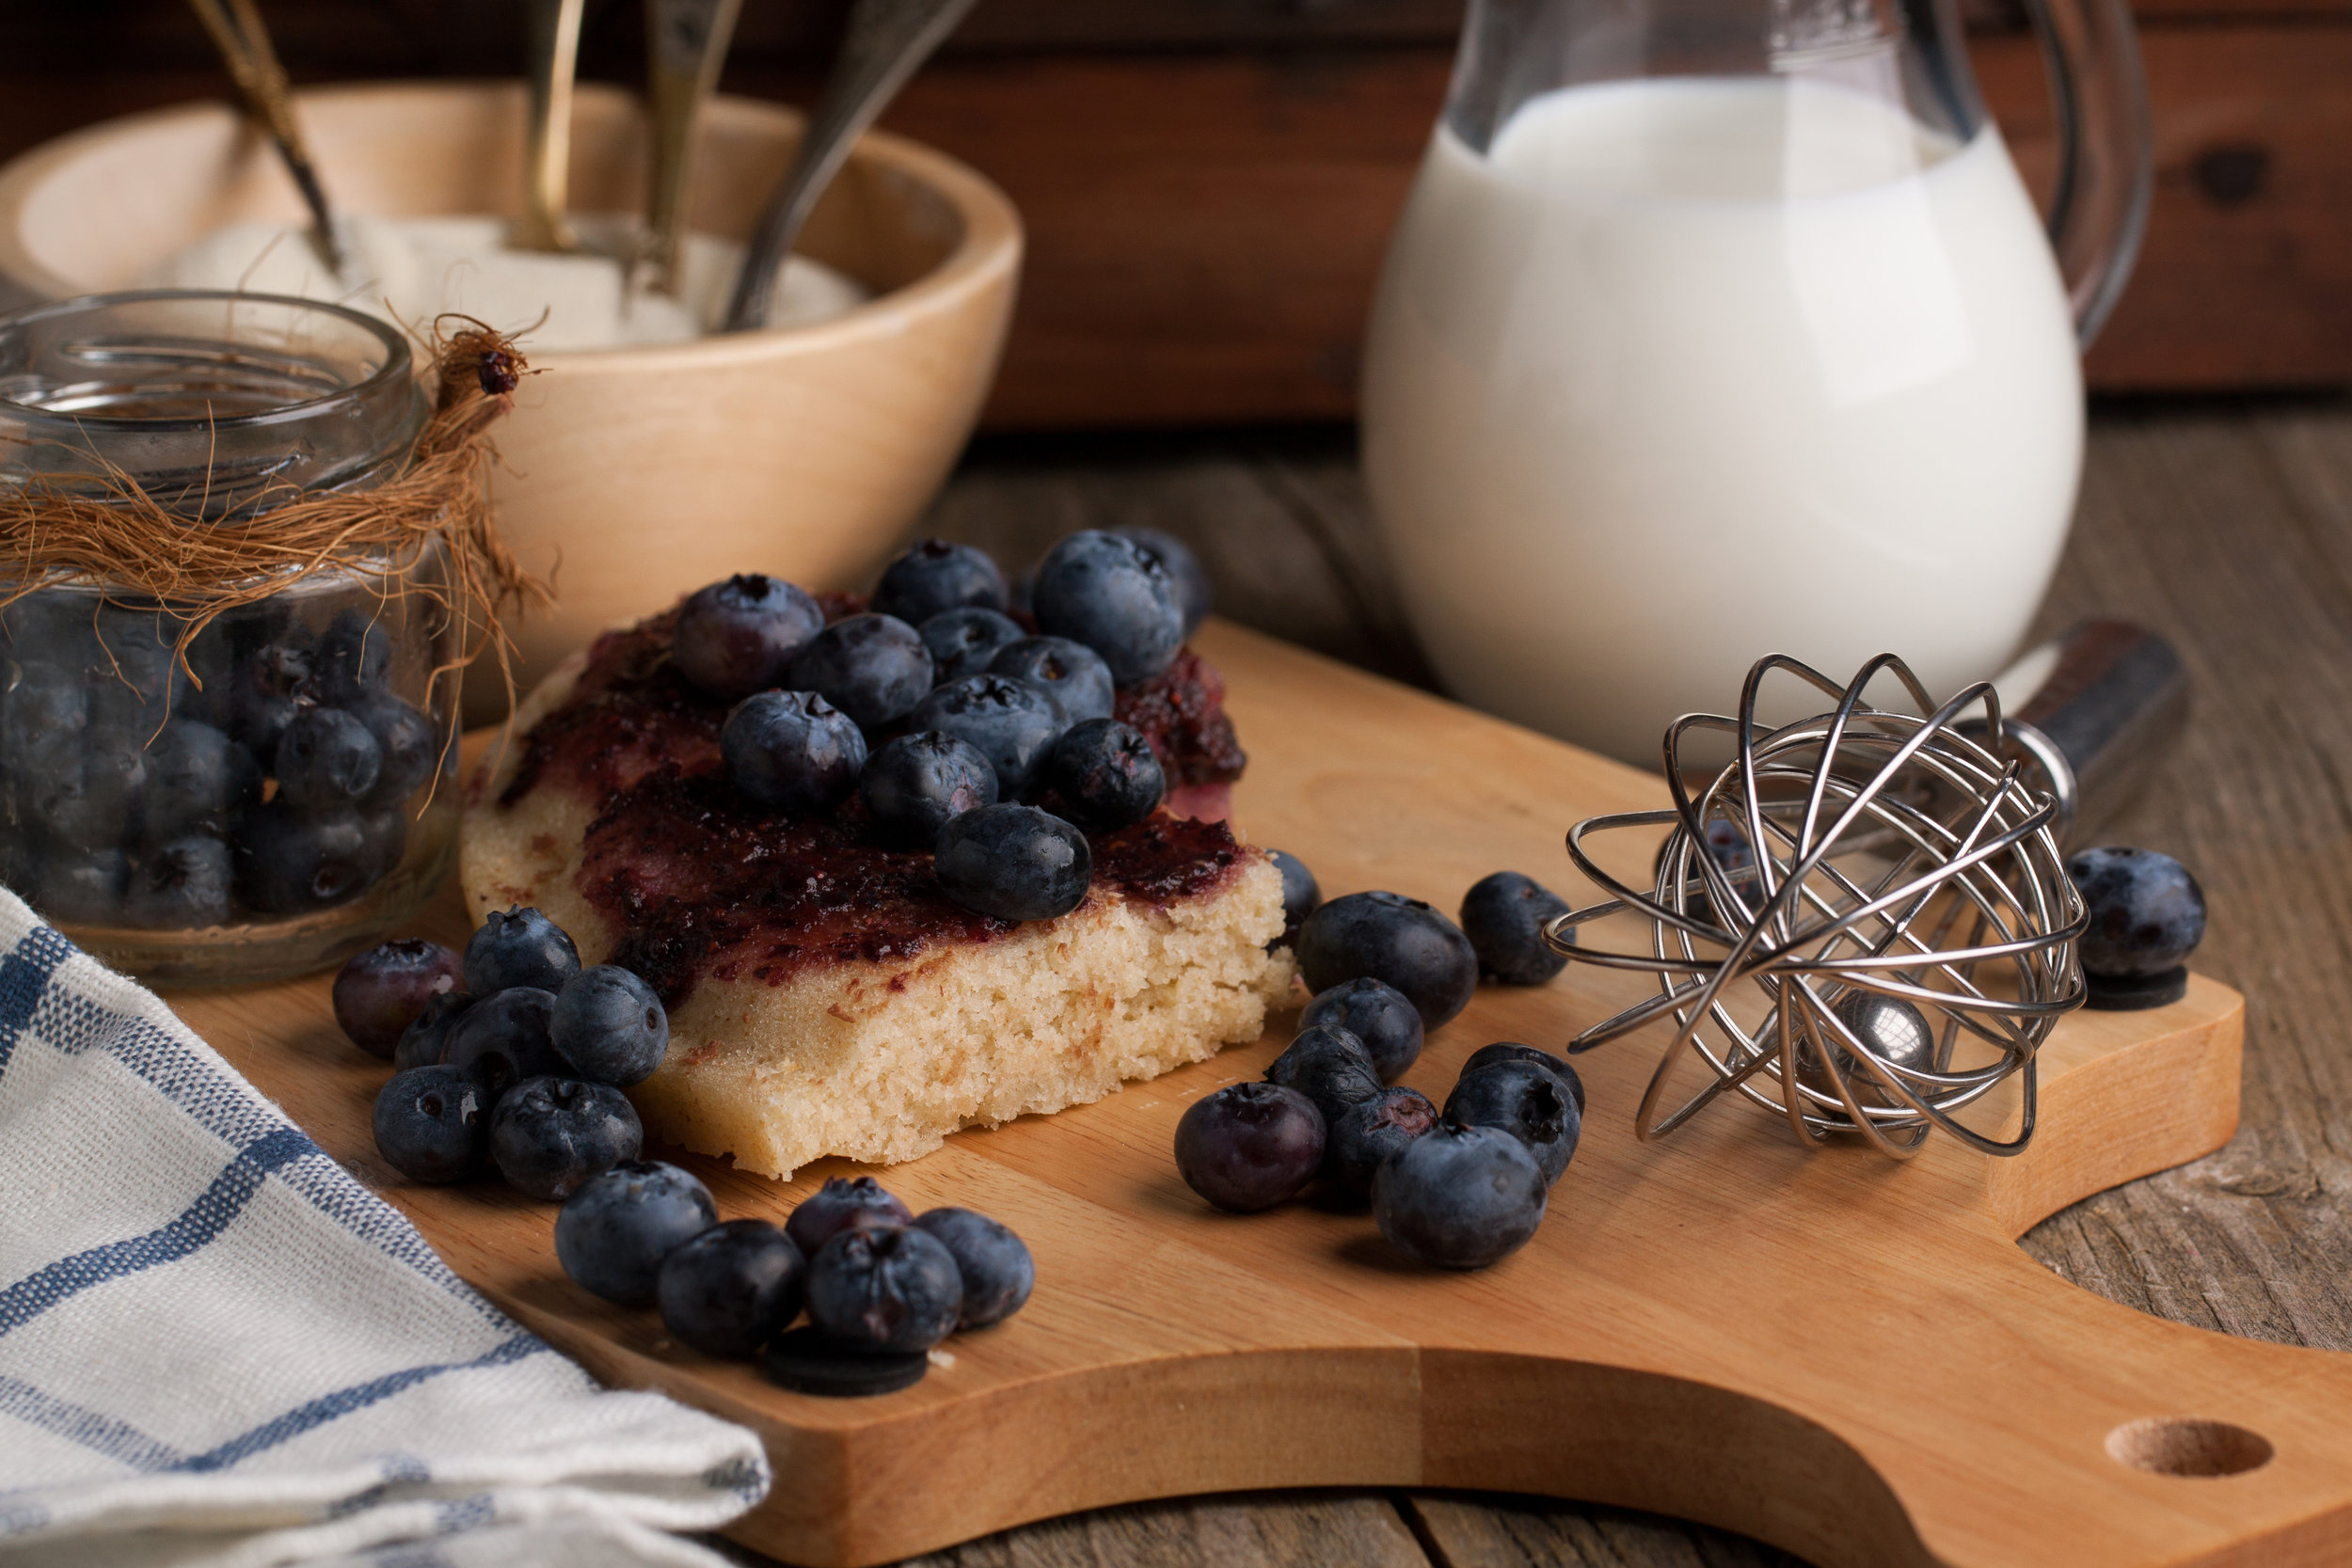 vanilla and blueberry pie, the inspiration for our soy wax candle